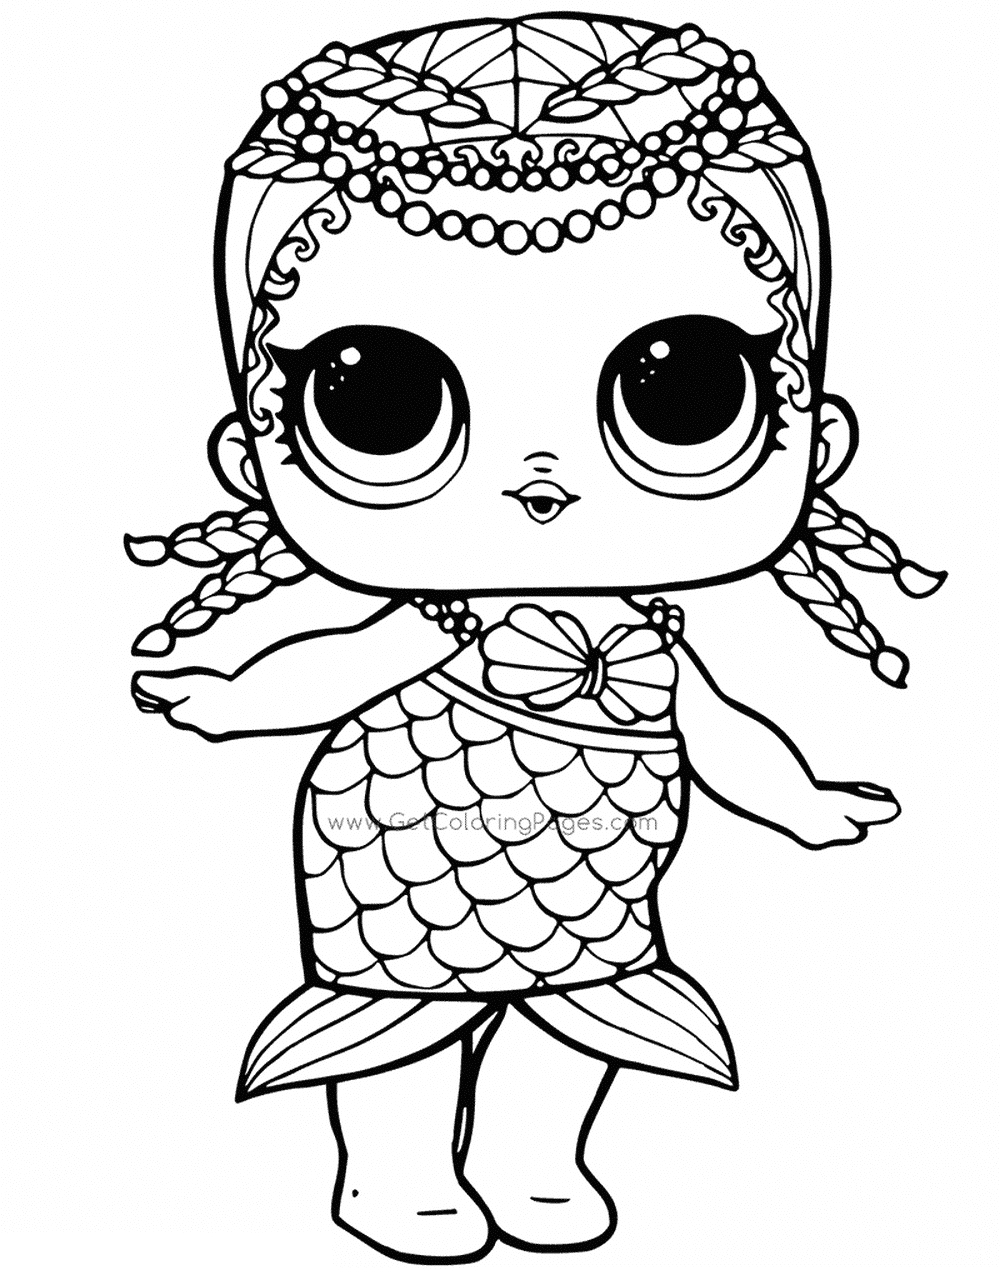 Lol Coloring Pages to Print for Free Lol Surprise Dolls Coloring Pages Print them for Free